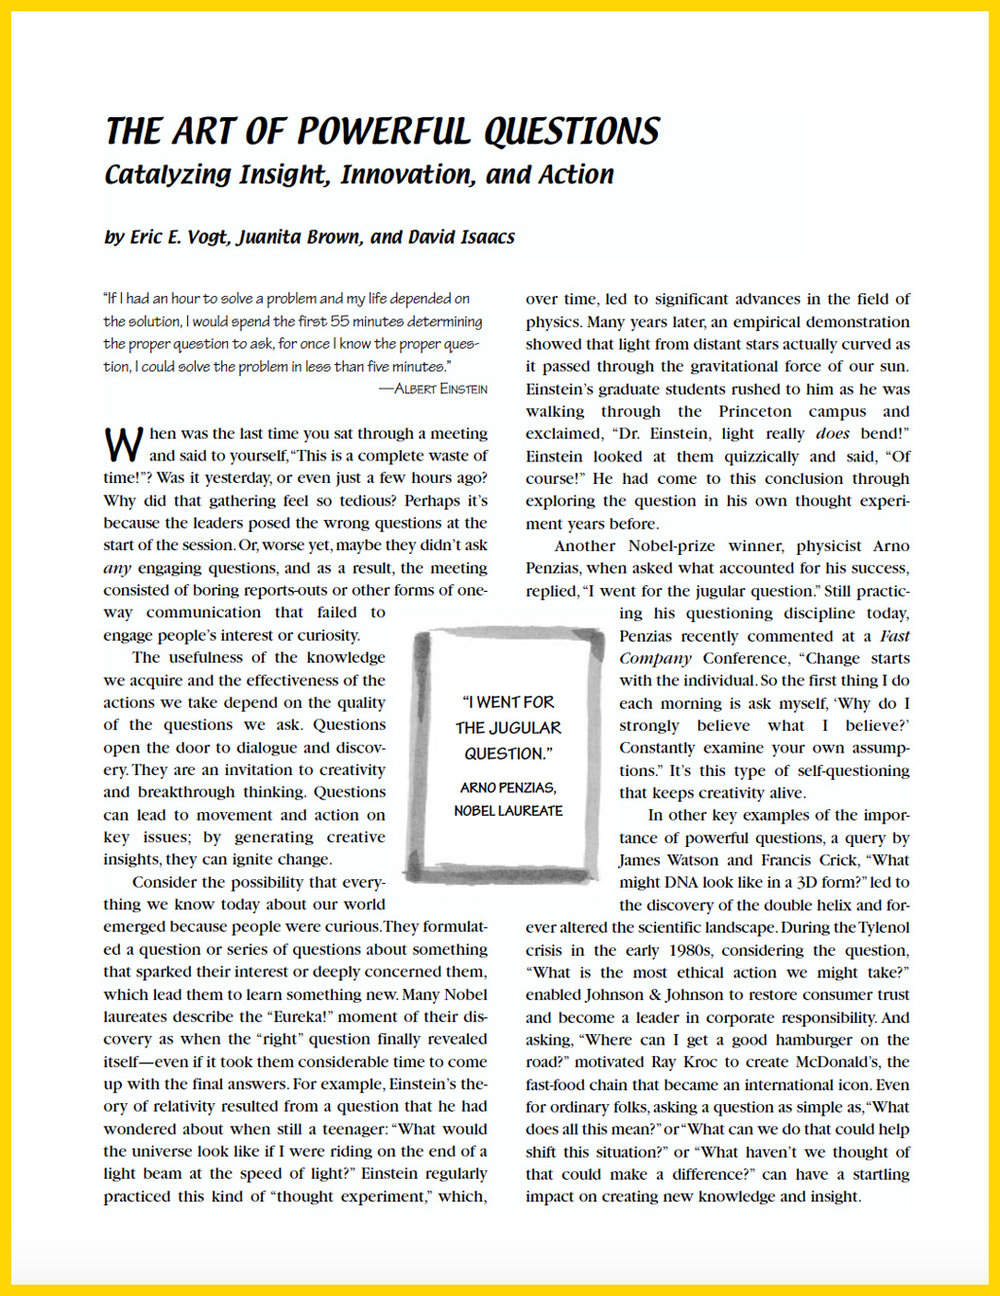 ARTICLE: The Art of Powerful Questions